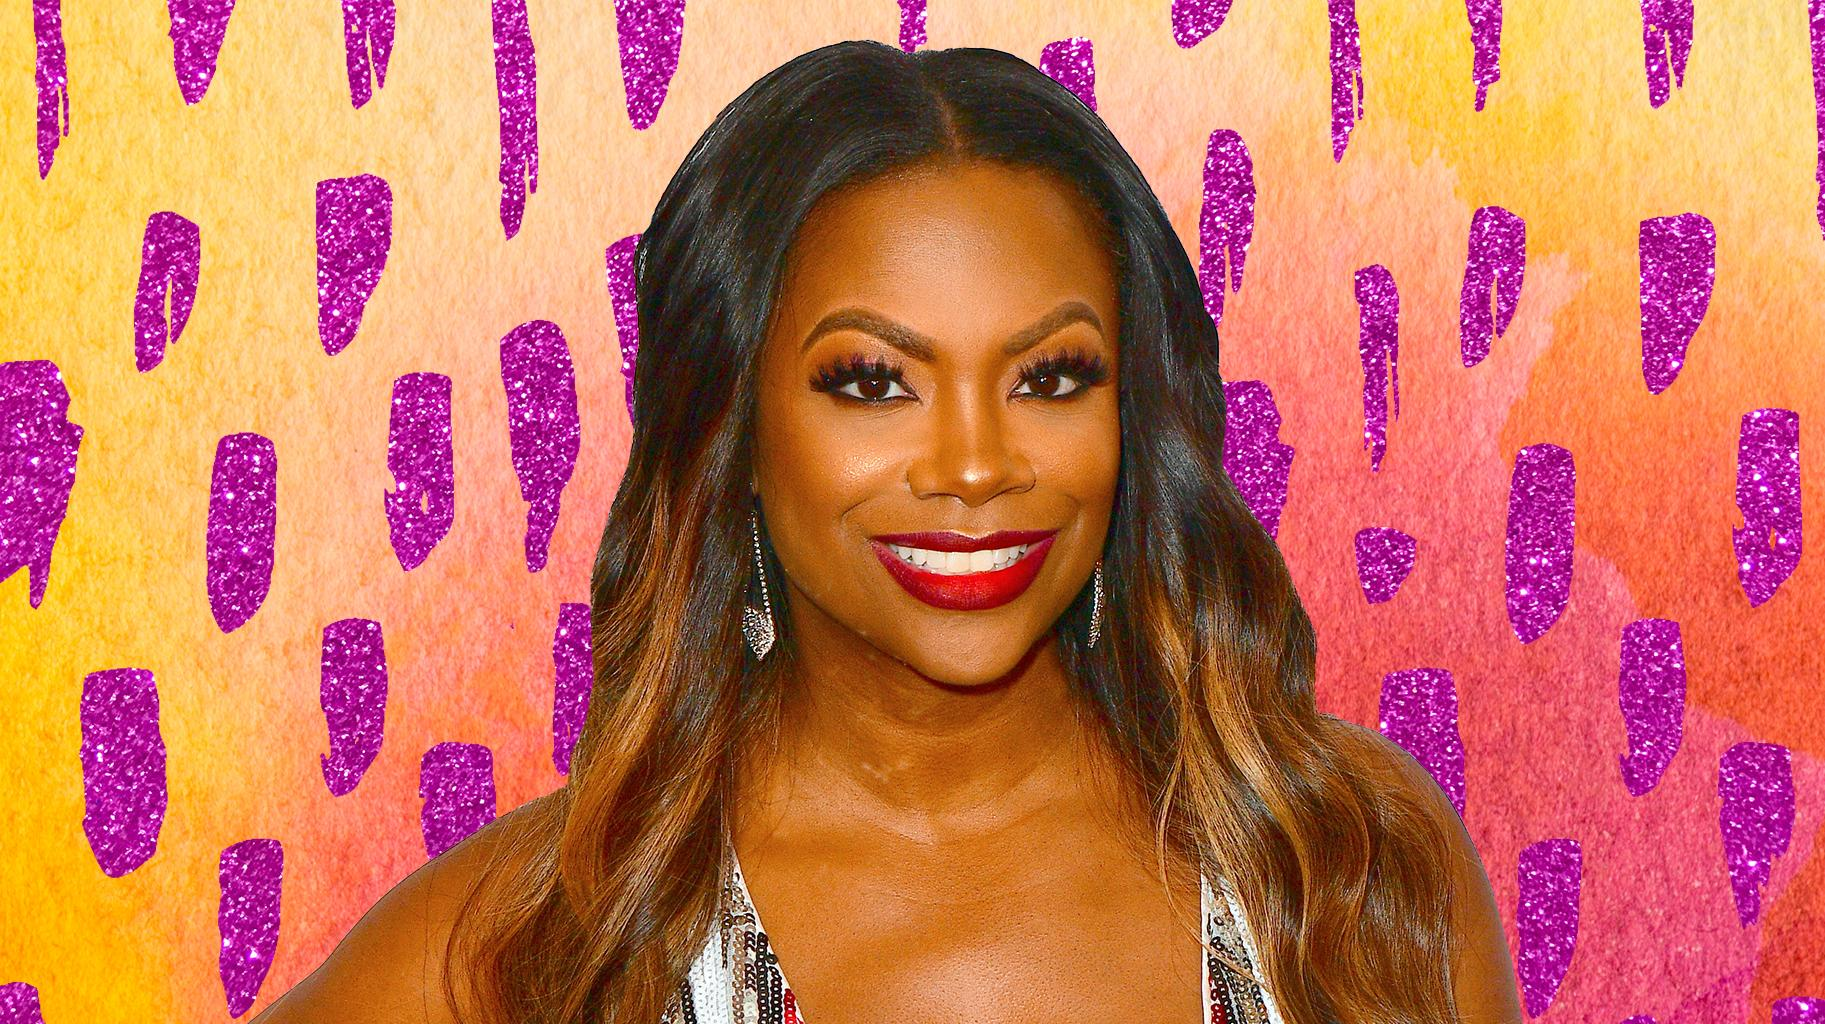 Kandi Burruss Asks For Cooking Advice From Fans - See Her Video